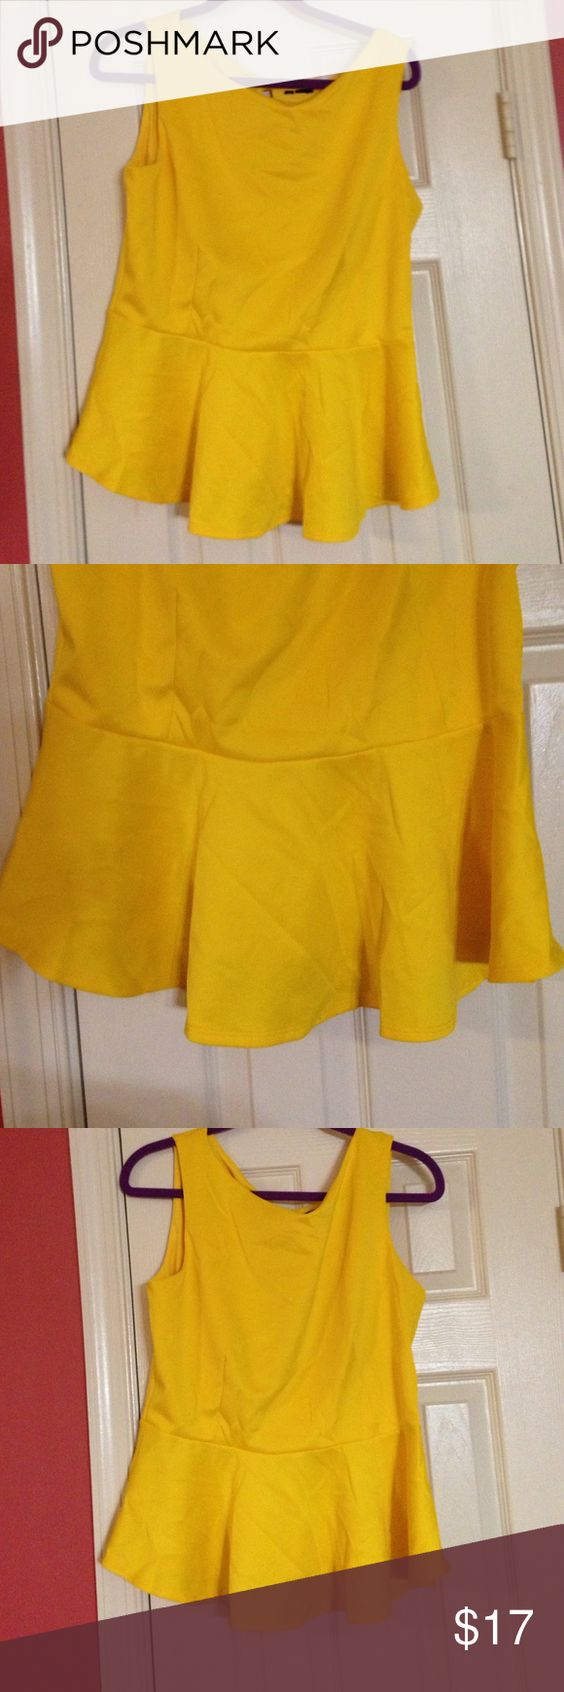 Yellow Peplum top Bright yellow peplum top with keyhole closure perfect for summer!! ASOS Tops Blouses